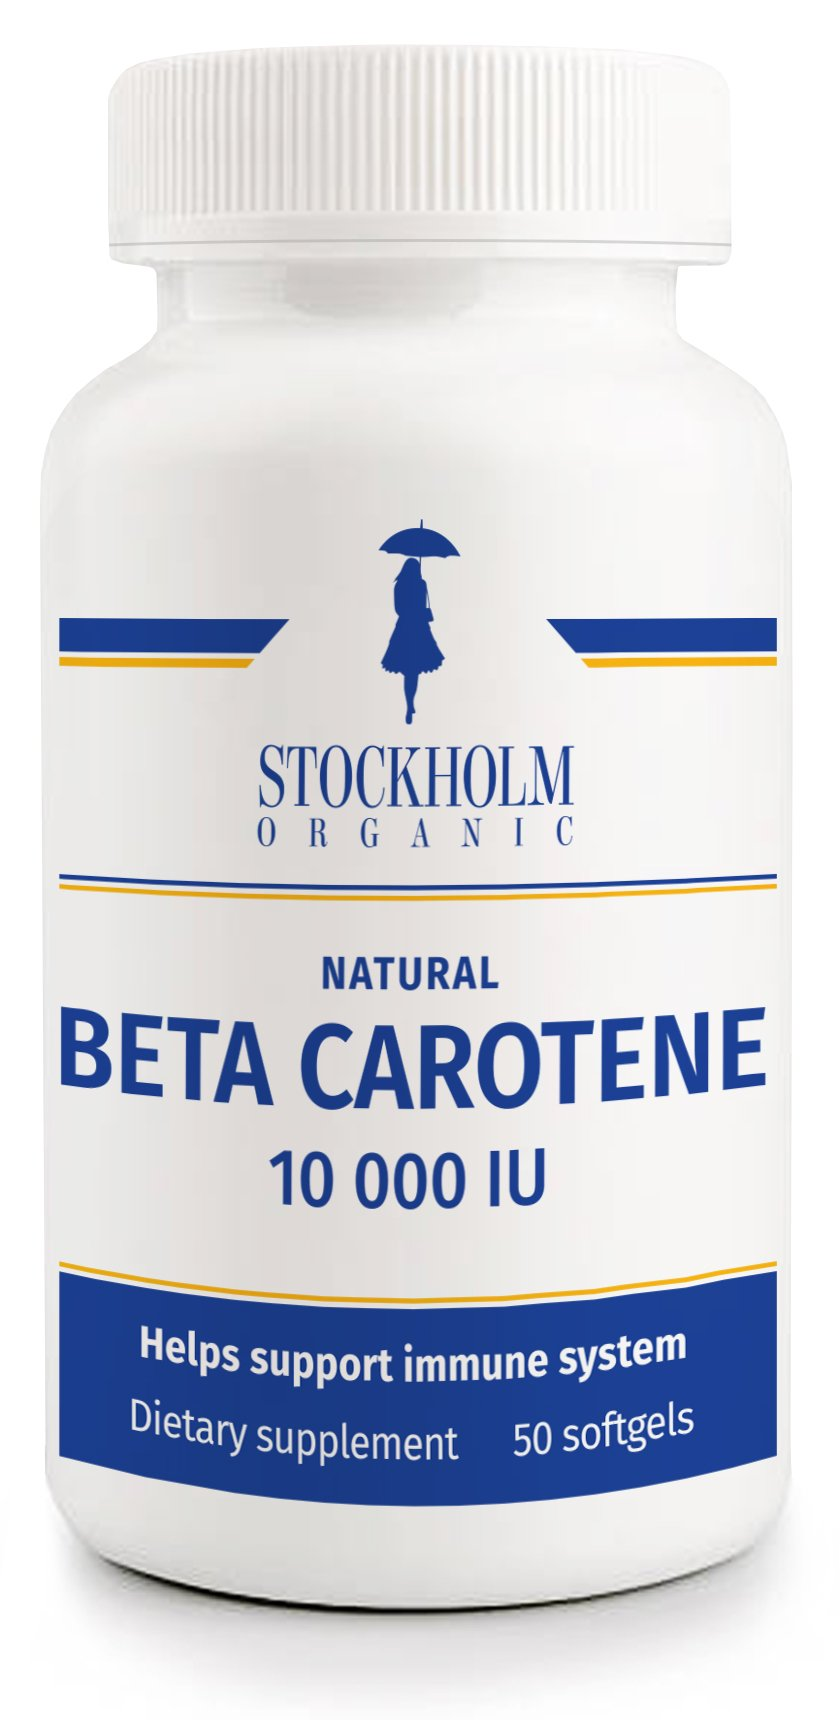 Natural Beta Carotene 10 000 IU